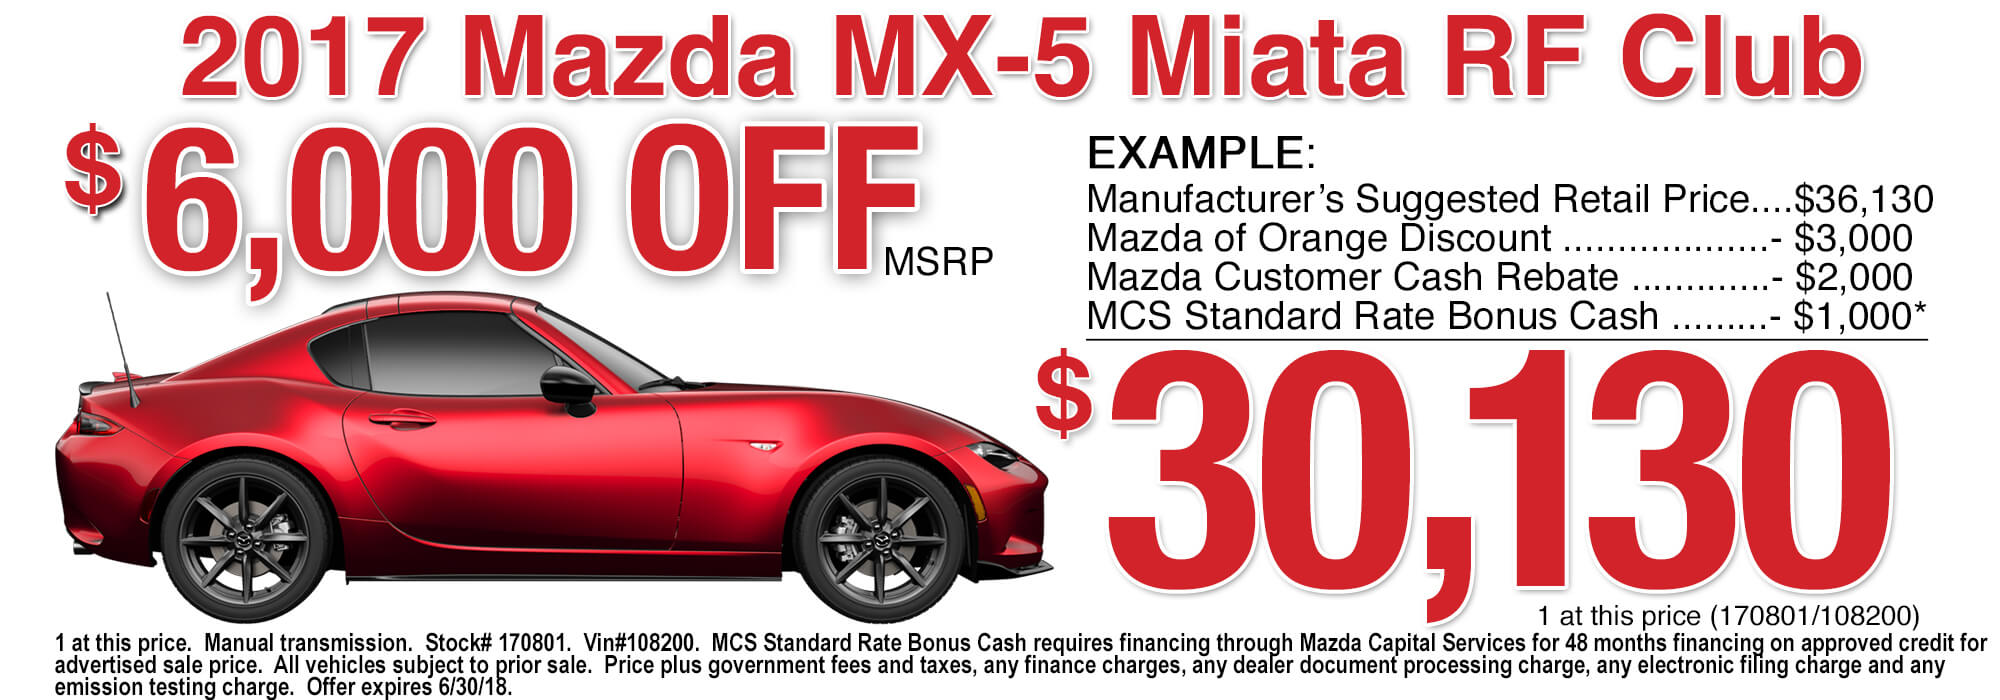 serving county inventory mx orange offer irvine tustin special miata mazda